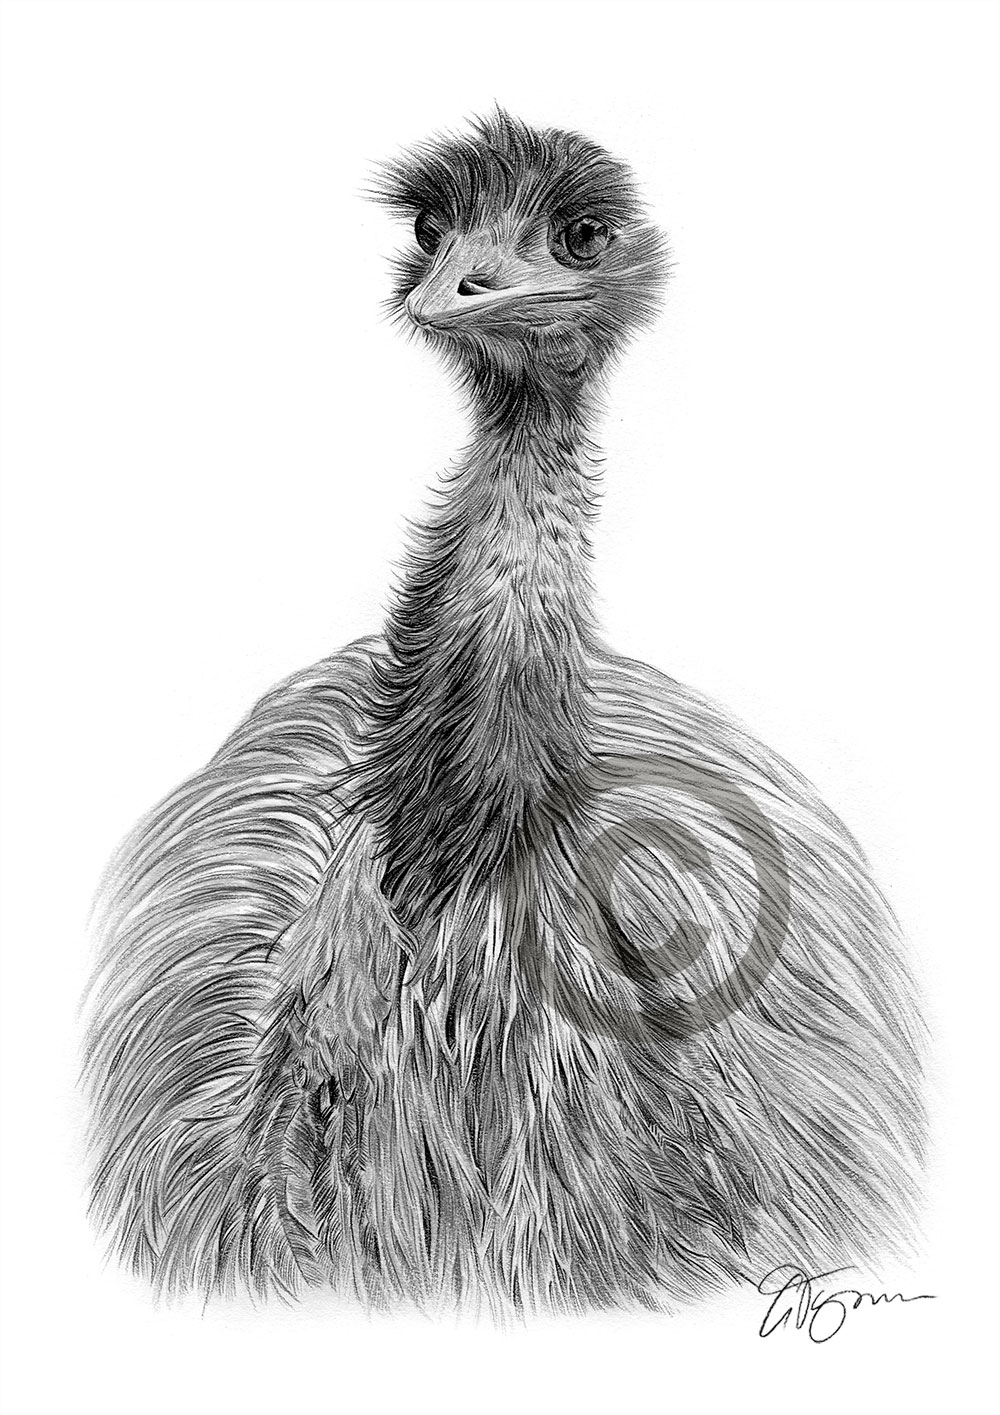 An emu pencil drawing by artist Gary Tymon